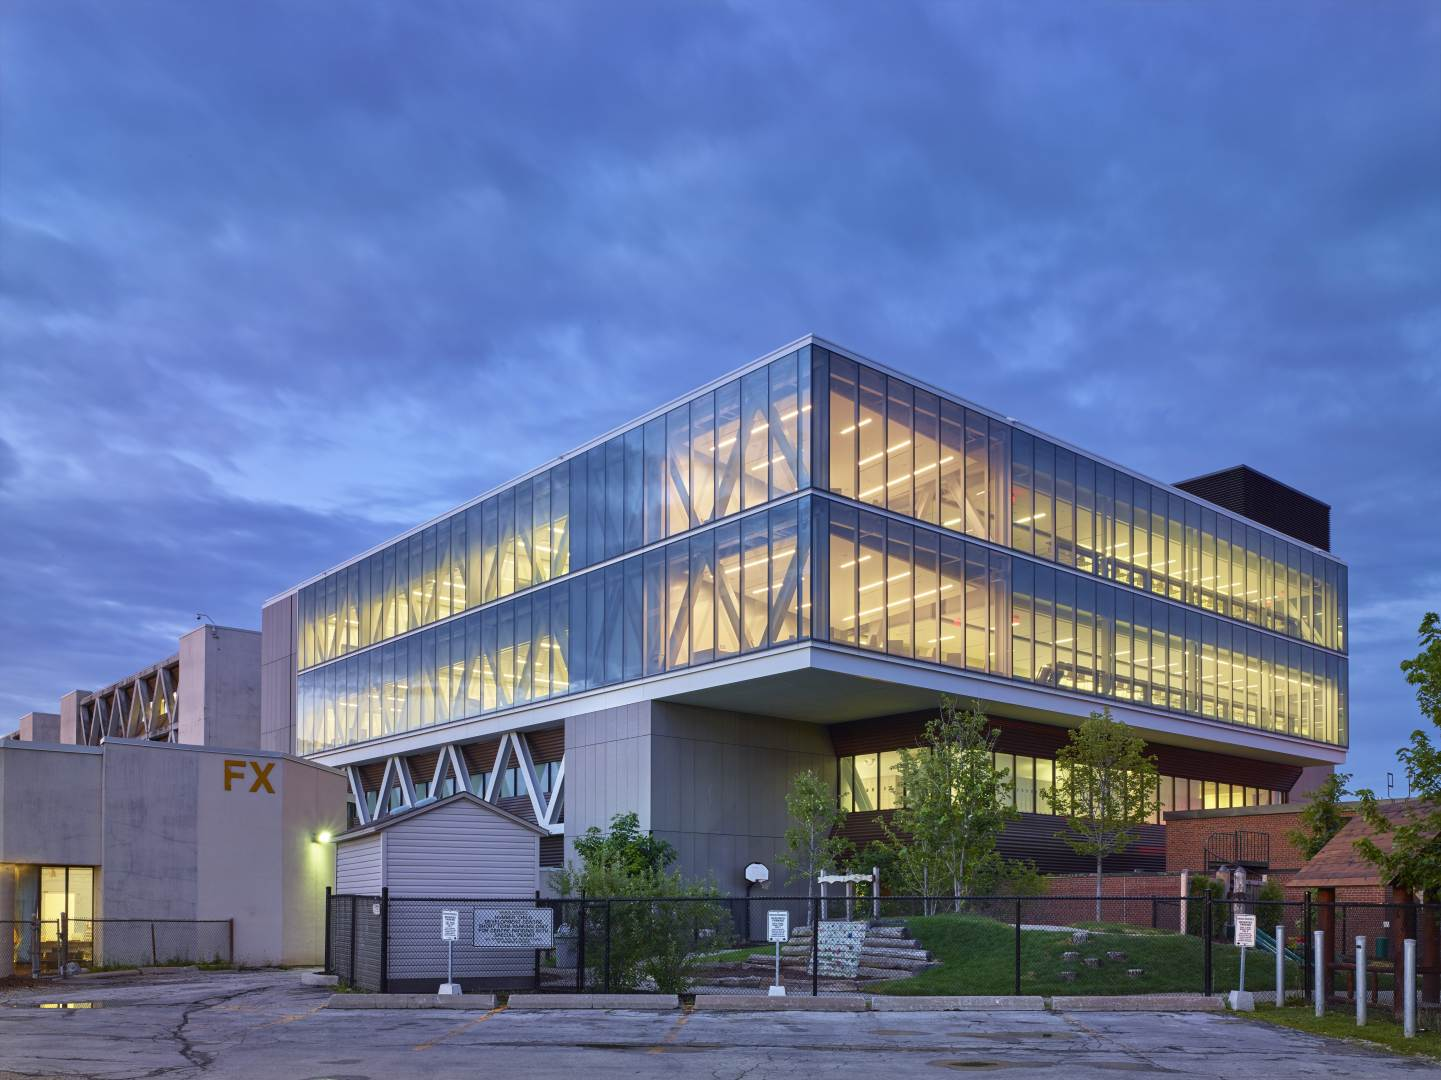 Humber College F Building Health Science Addition